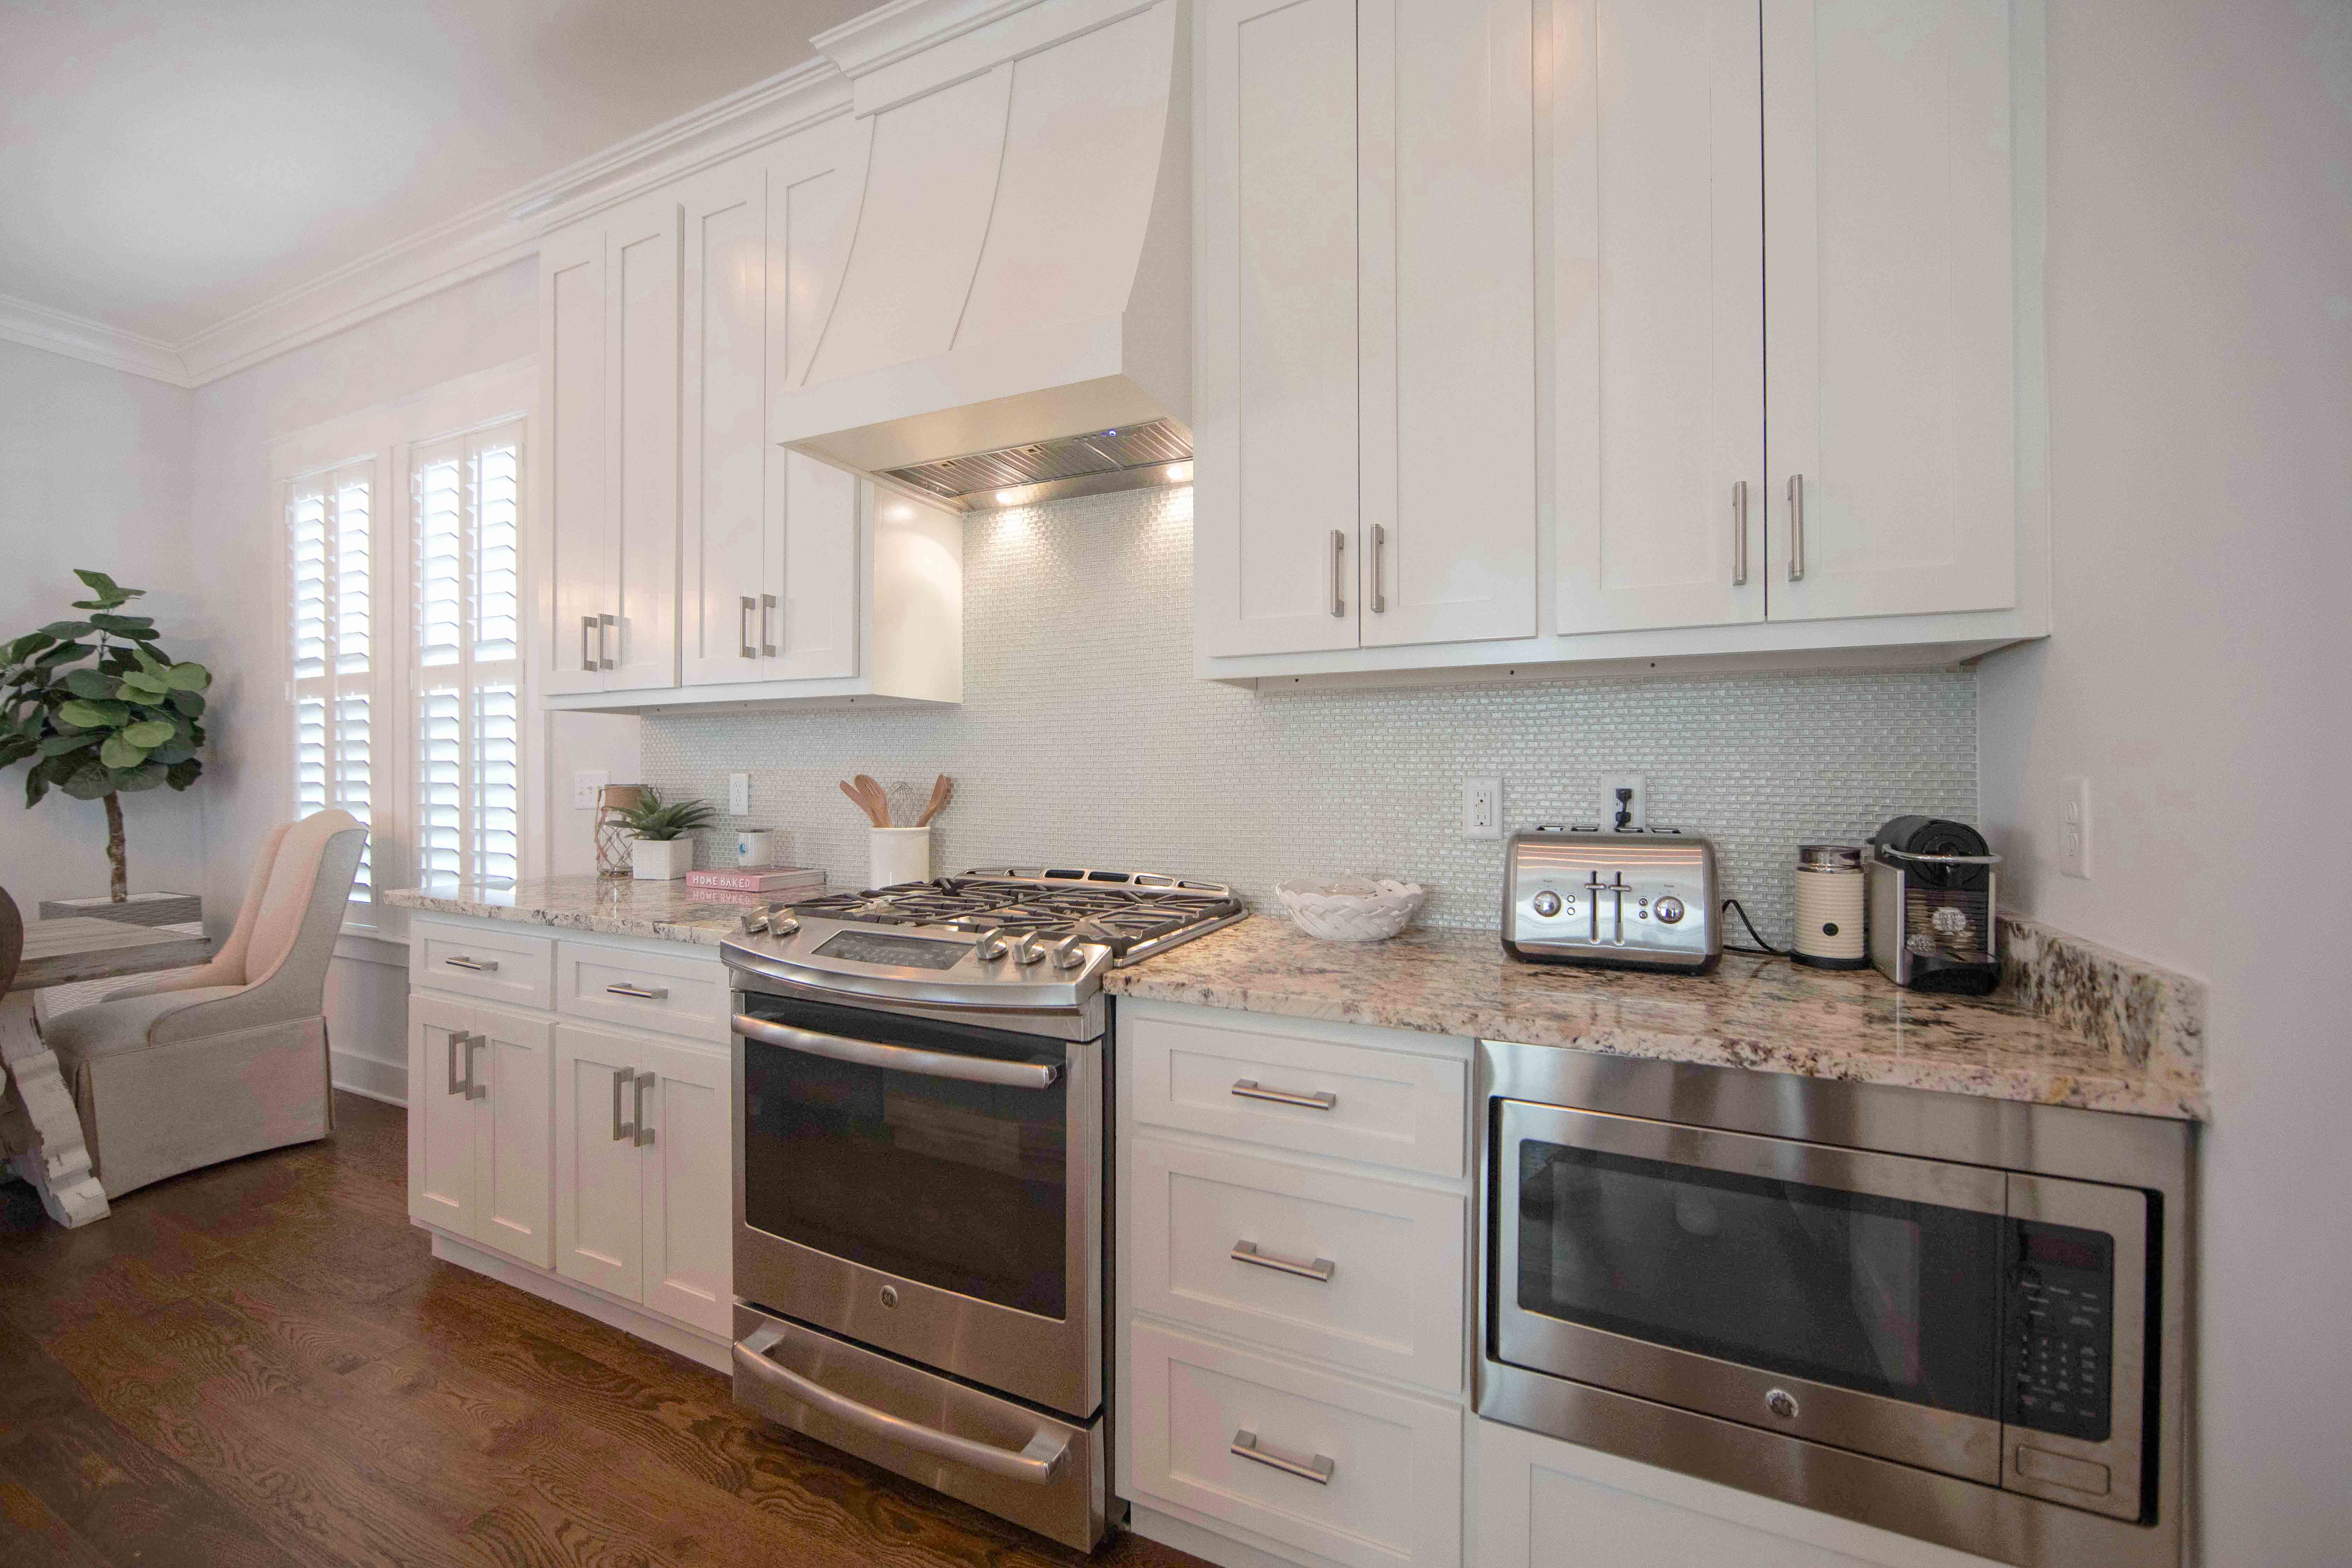 Beautiful Stainless Steel appliances with well stocked kitchen for preparing your family meals.